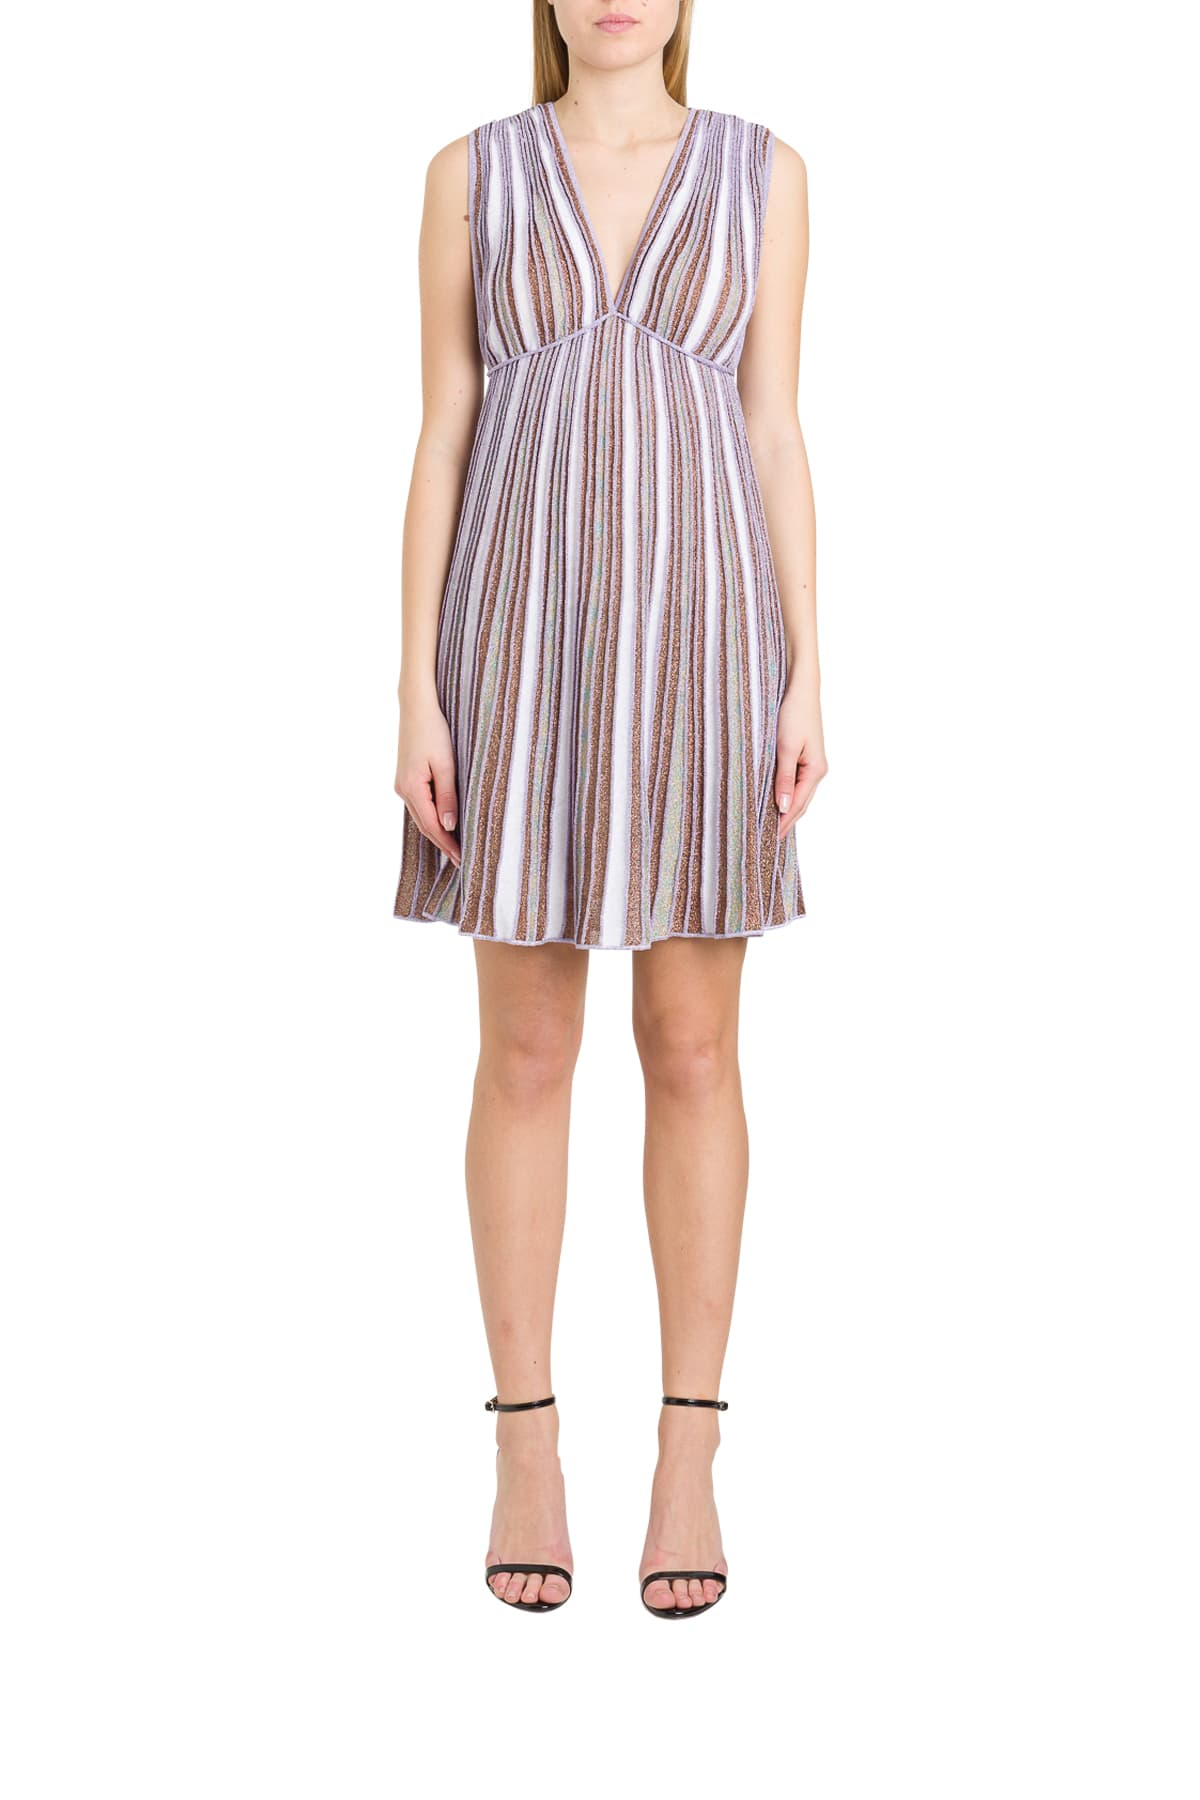 Buy M Missoni Ribbed Lurex Knit Dress With Empire Waist online, shop M Missoni with free shipping